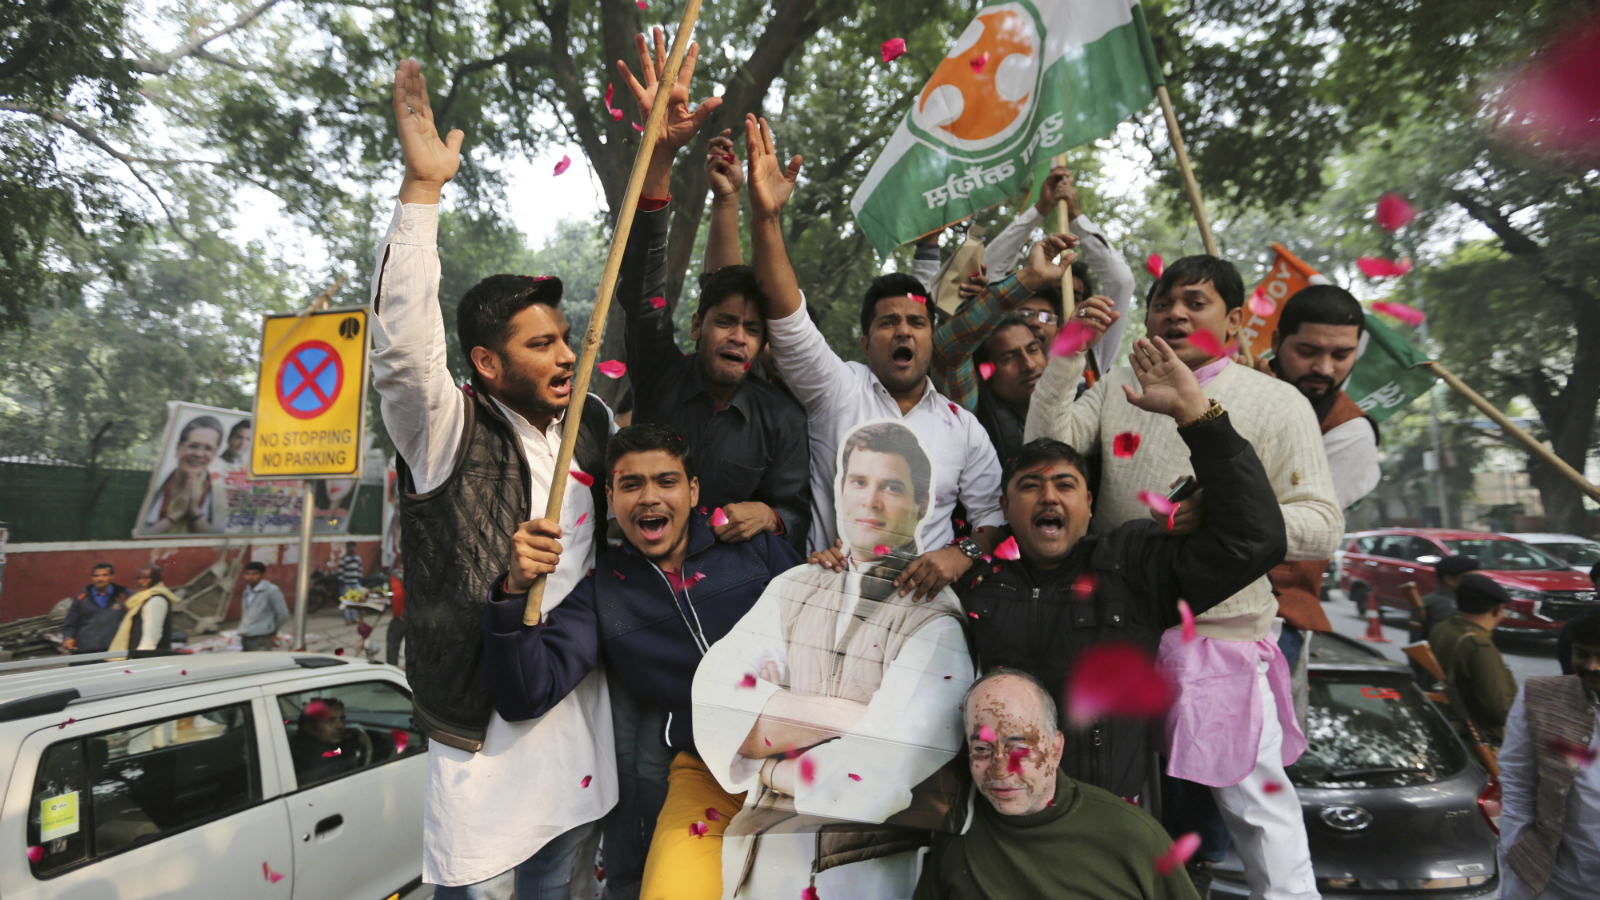 Congress, BJP double down on surveys, data for India's 2019